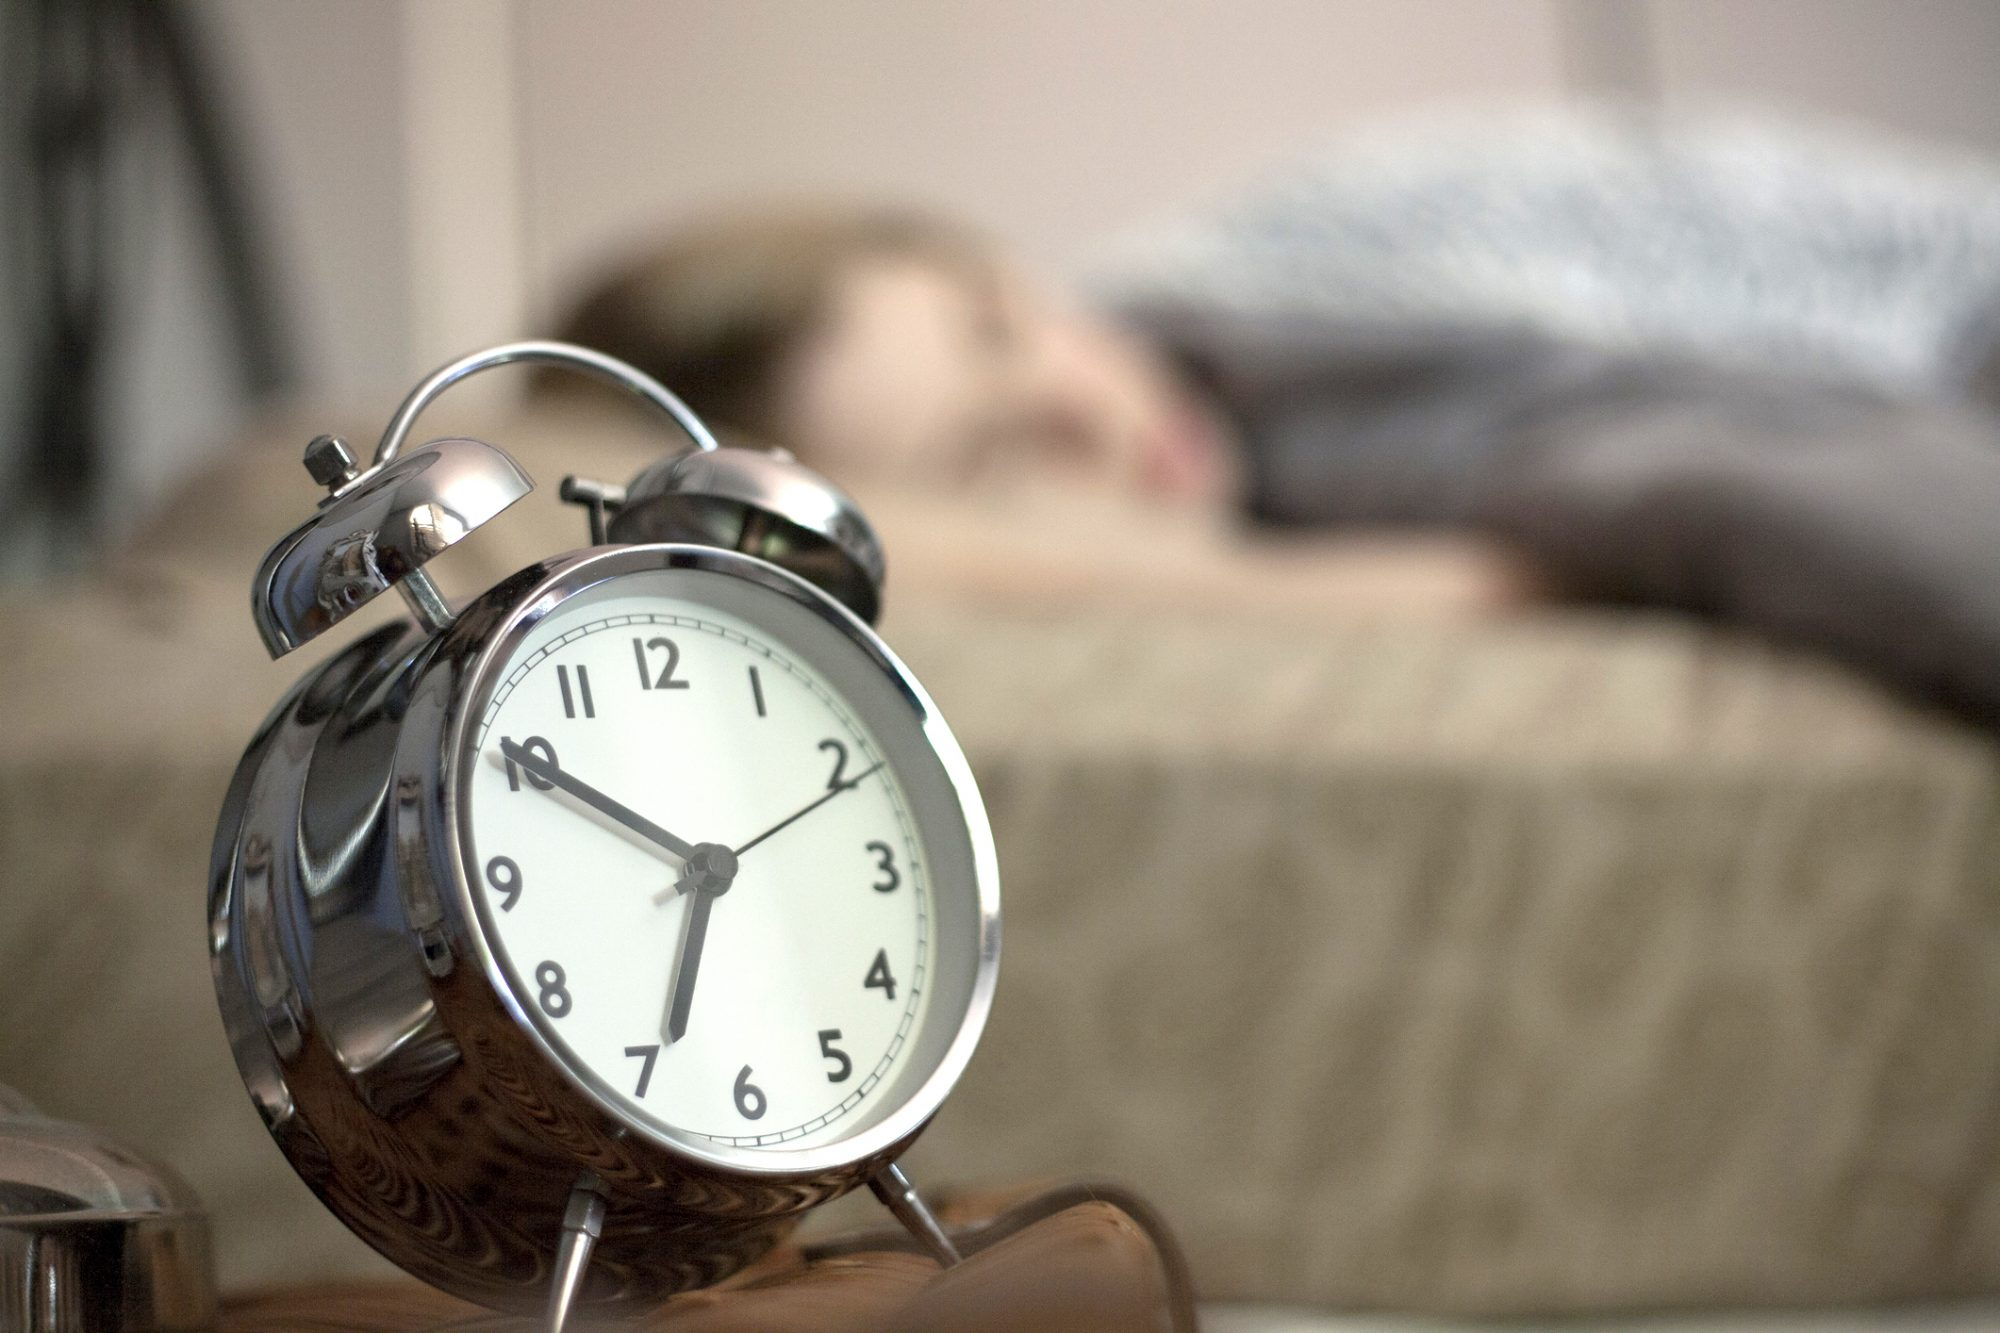 11 Alarm Clocks for Heavy Sleepers